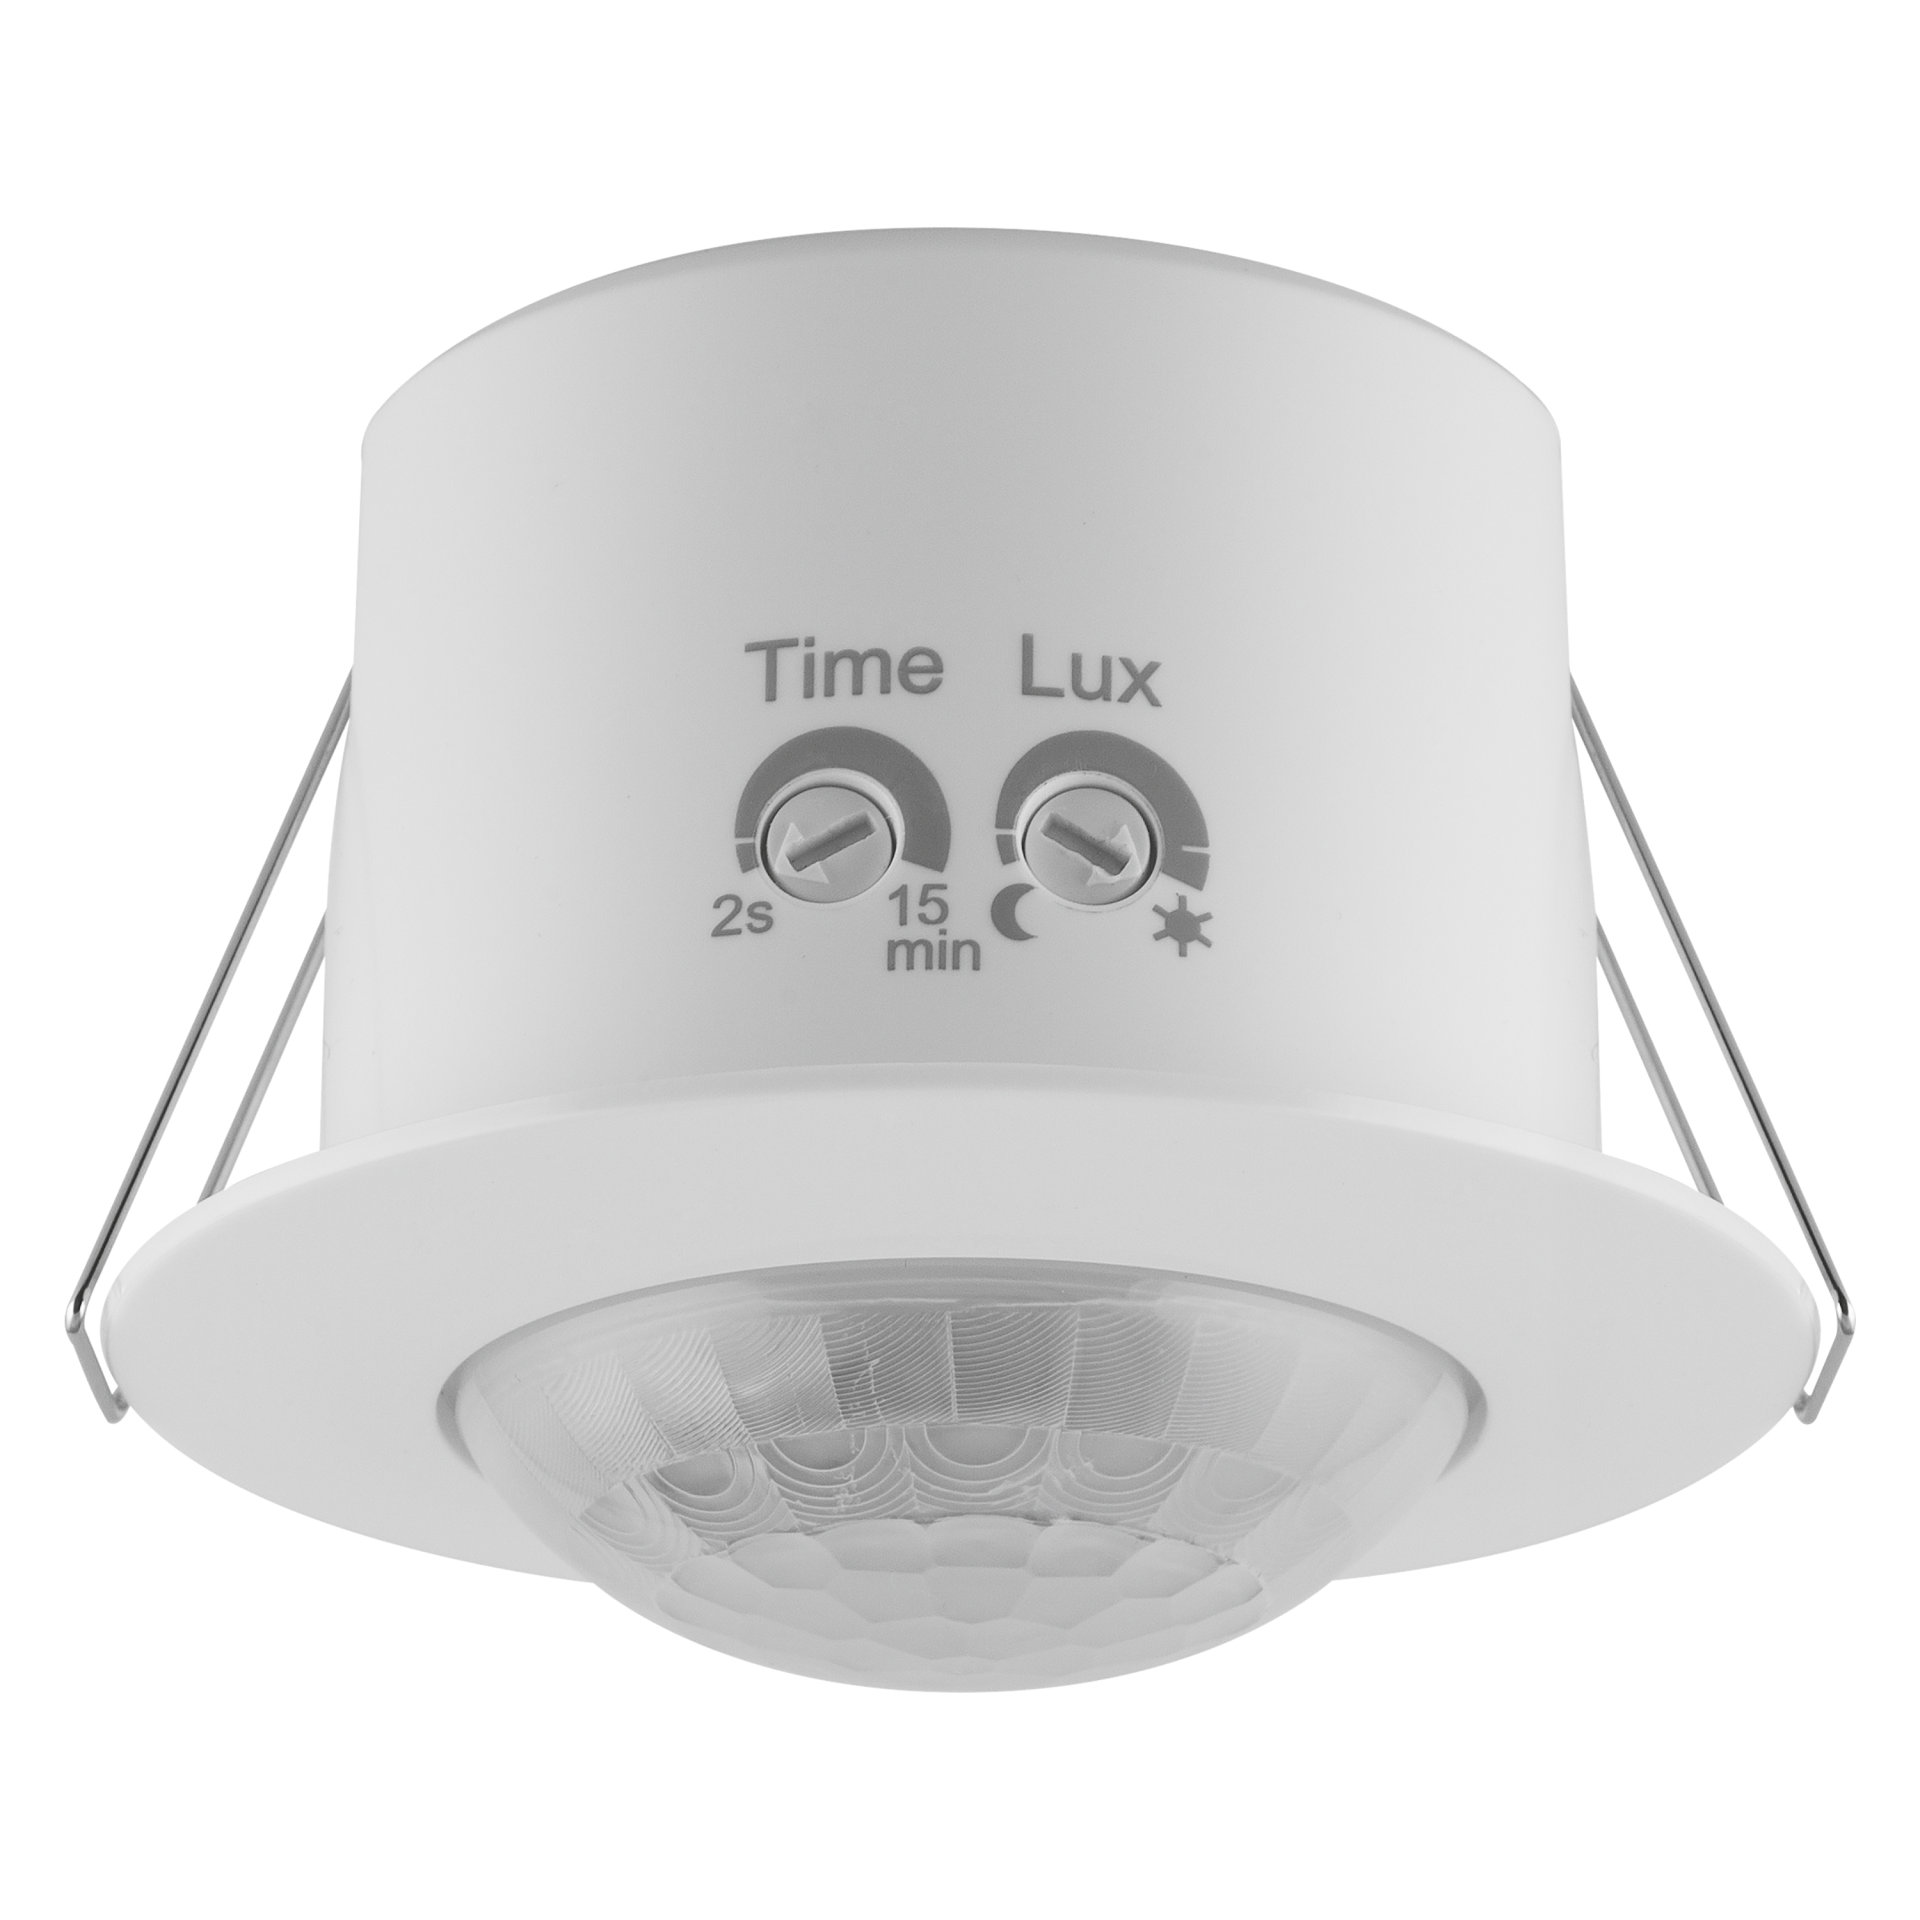 SENSOR CEILING FLUSH IP20